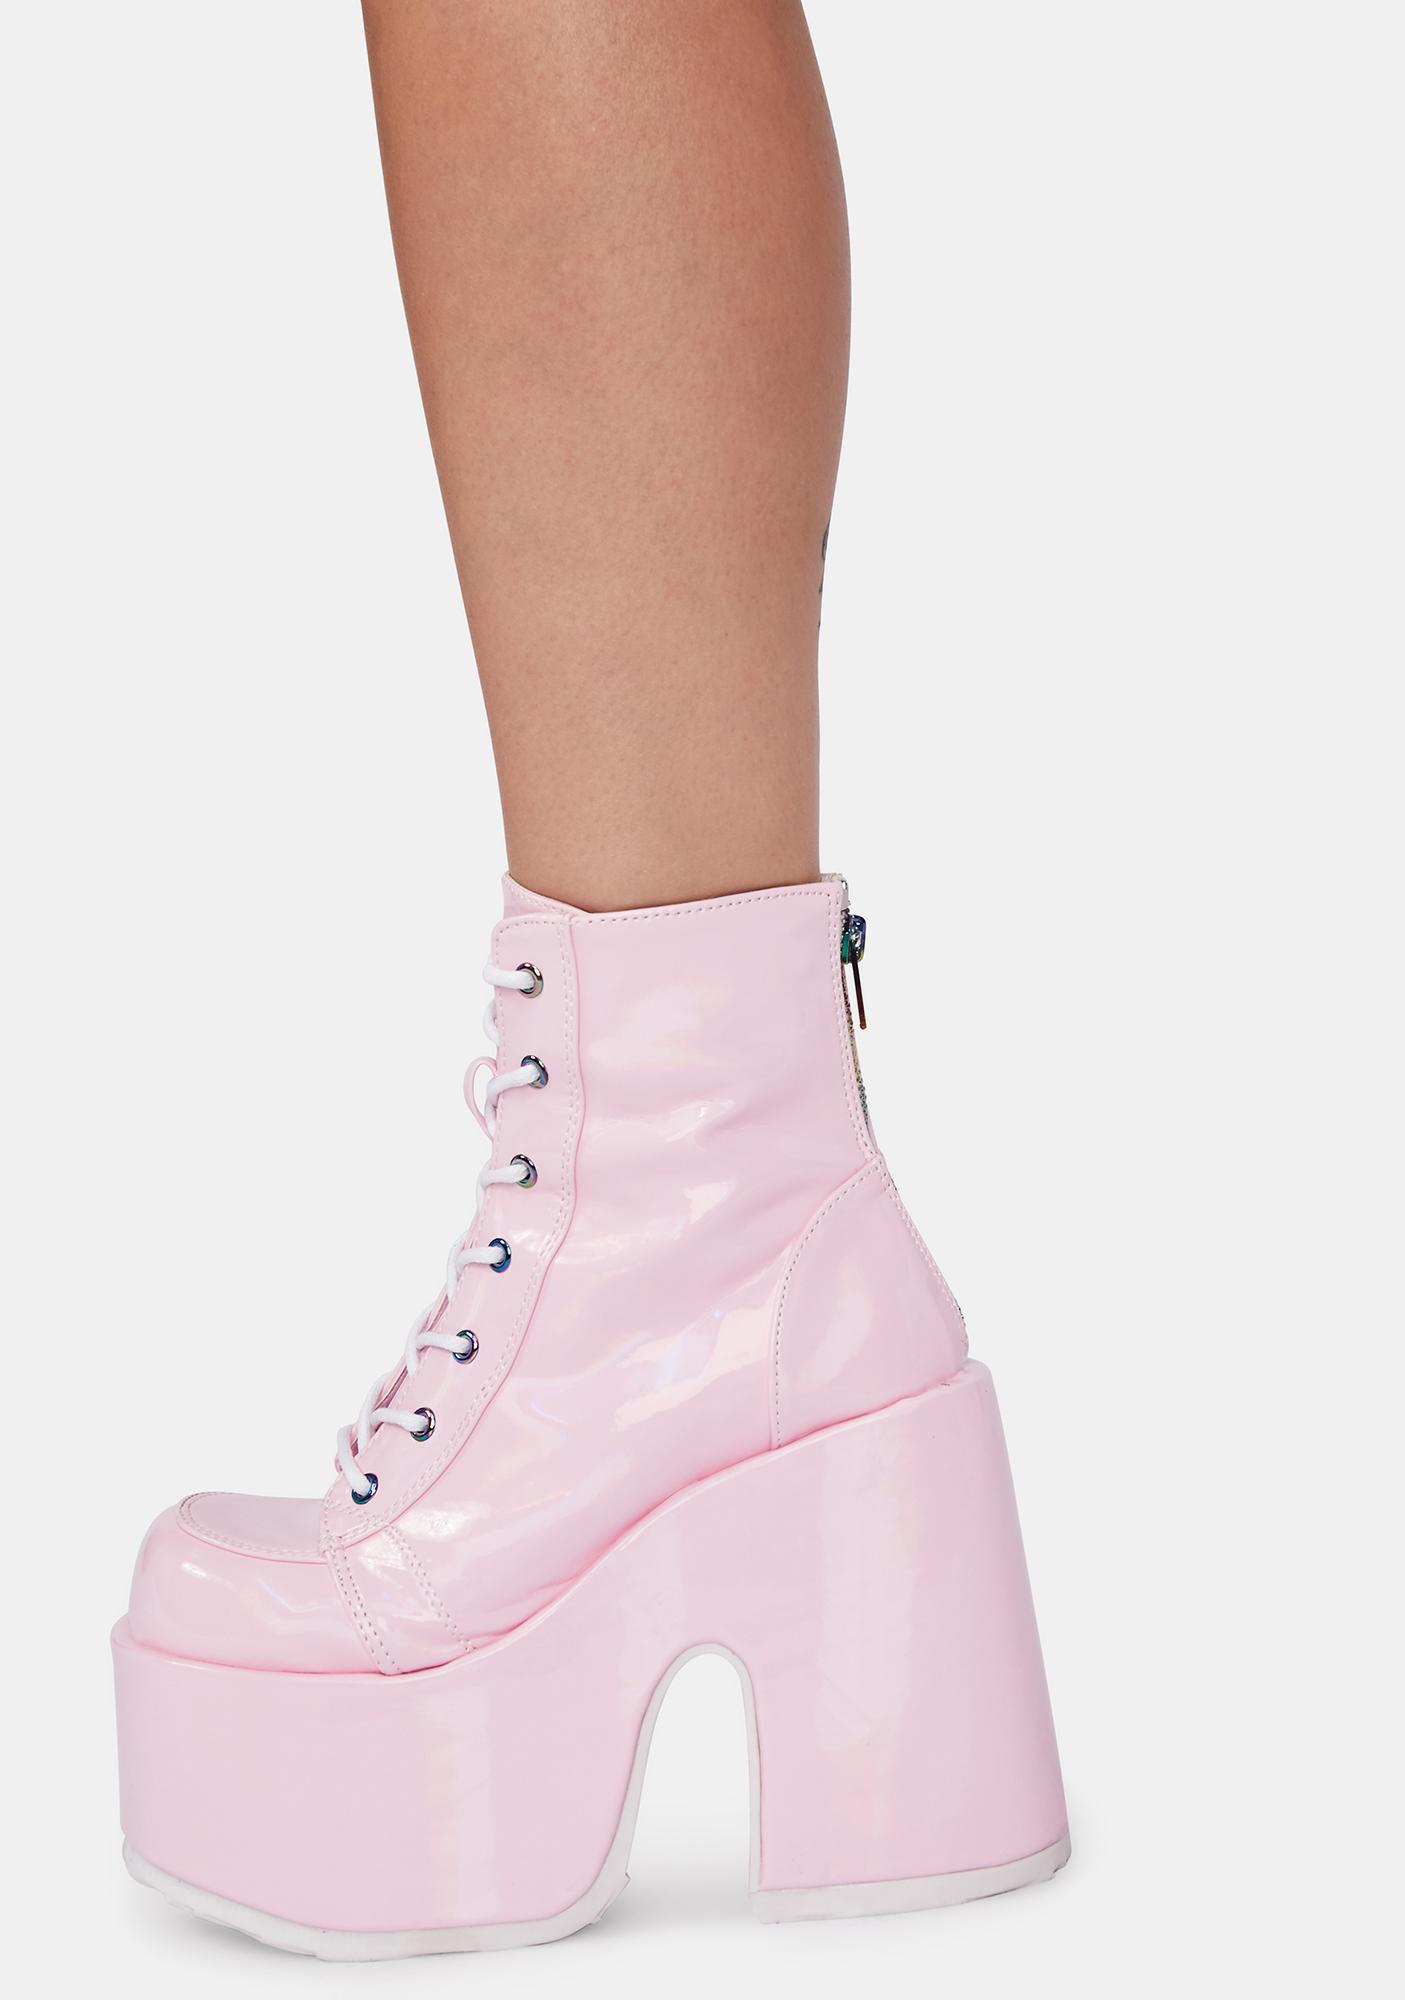 Demonia Bubblegum Rave Royalty Platform Boots